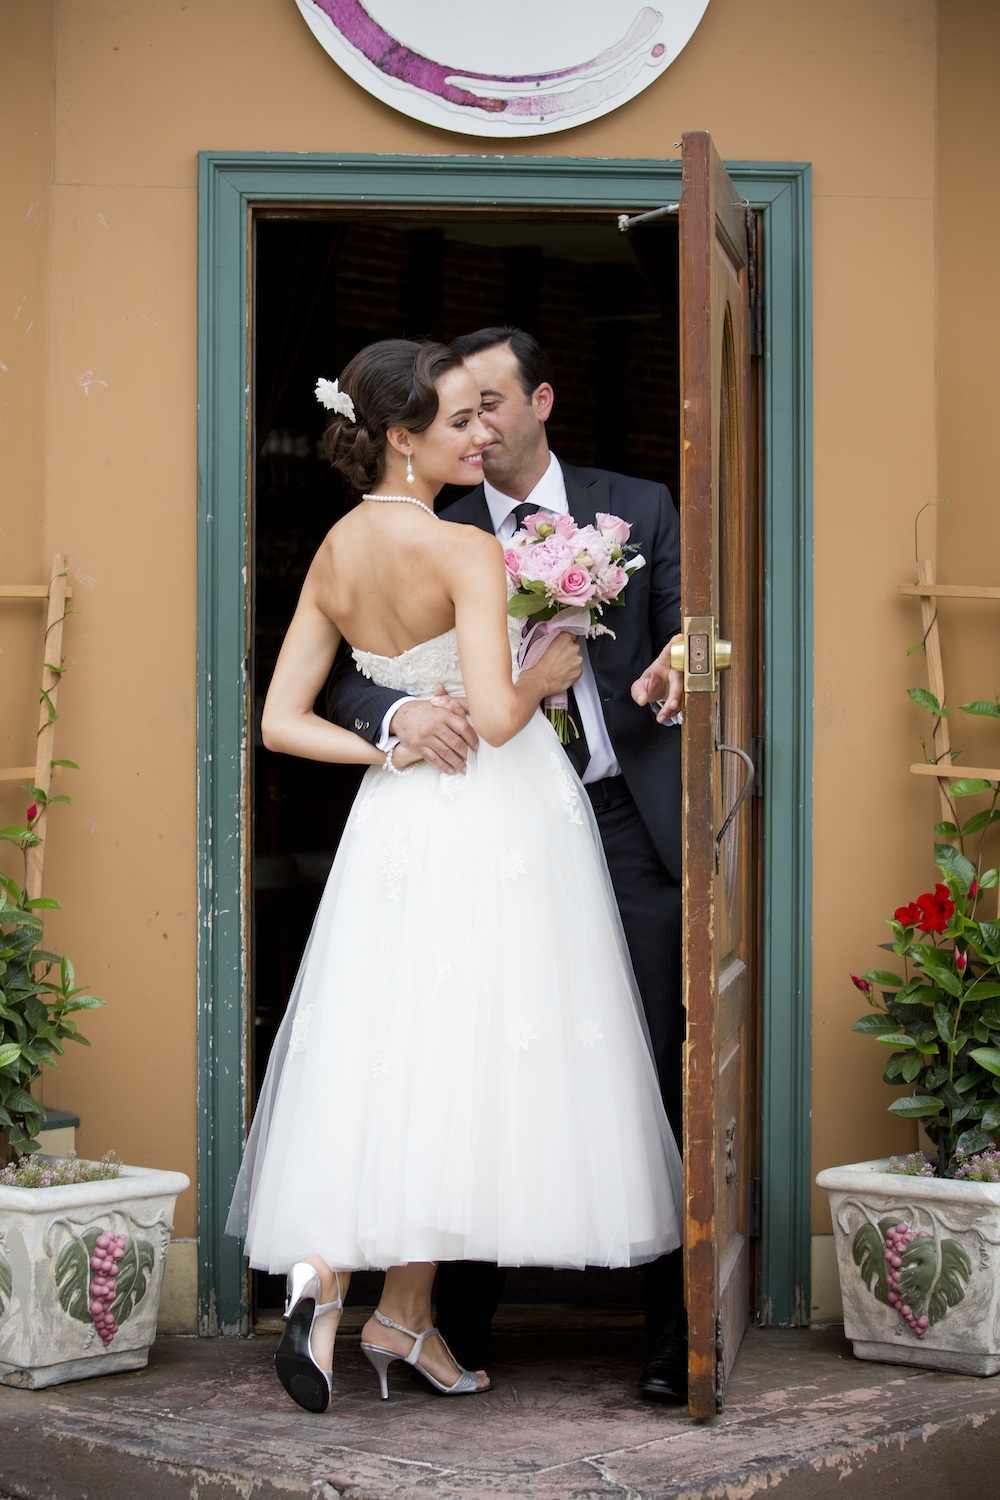 Cute Wedding Photo Idea {sneaking away for a few kisses} / photo by Krista Patton Photography